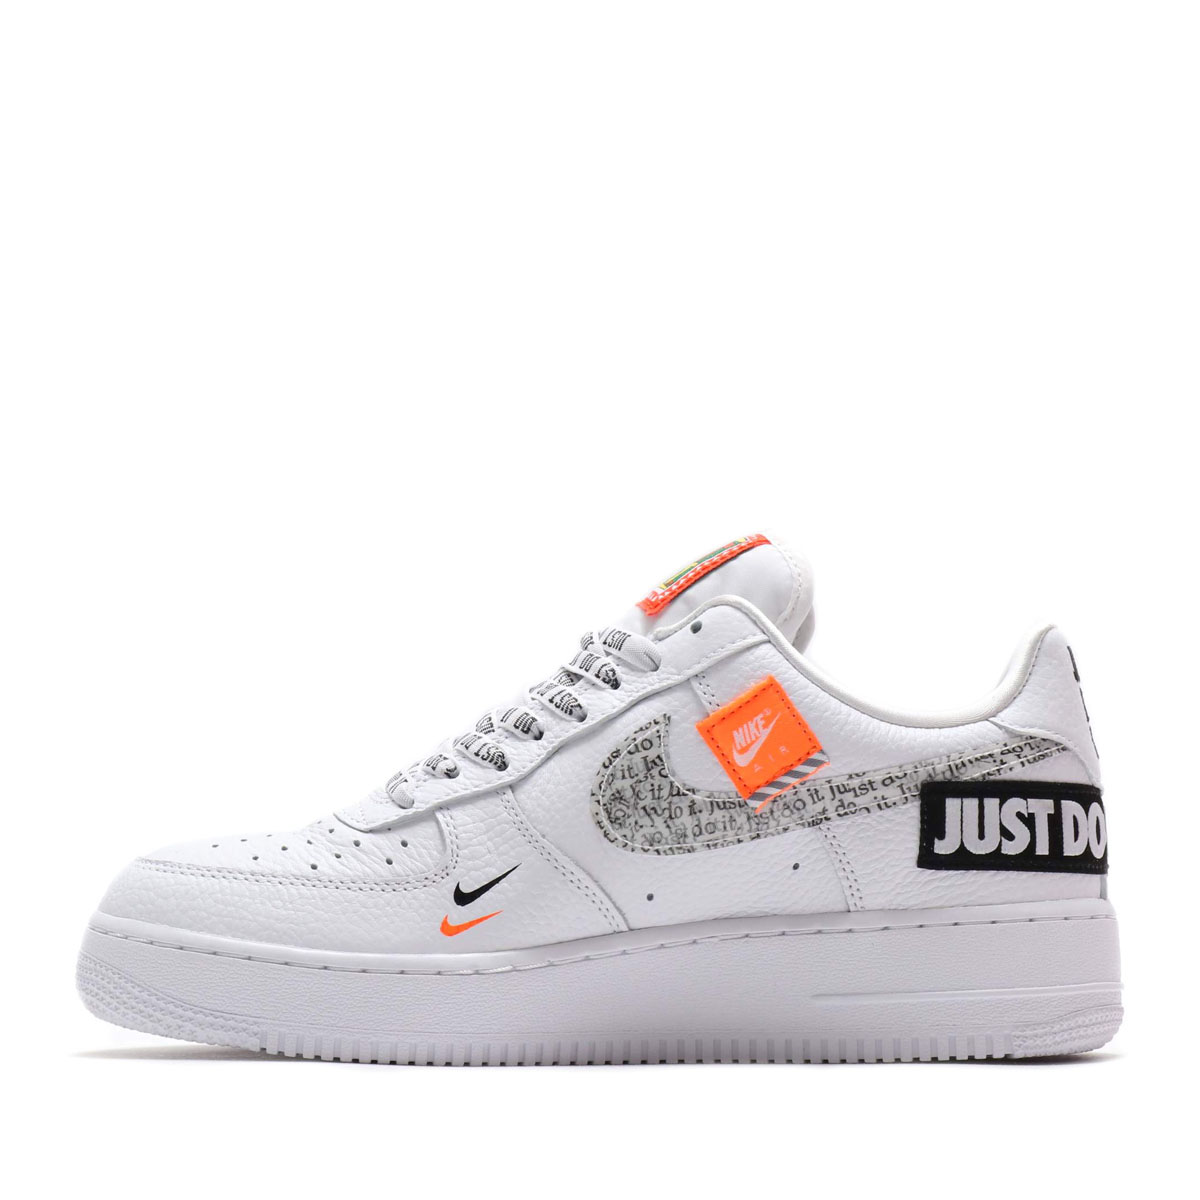 huge selection of 66a87 c92e5 NIKE AIR FORCE 1  07 PRM JDI (Nike air force 1 07 premium JDI)  WHITE WHITE-BLACK-TOTAL ORANGE 18FA-S